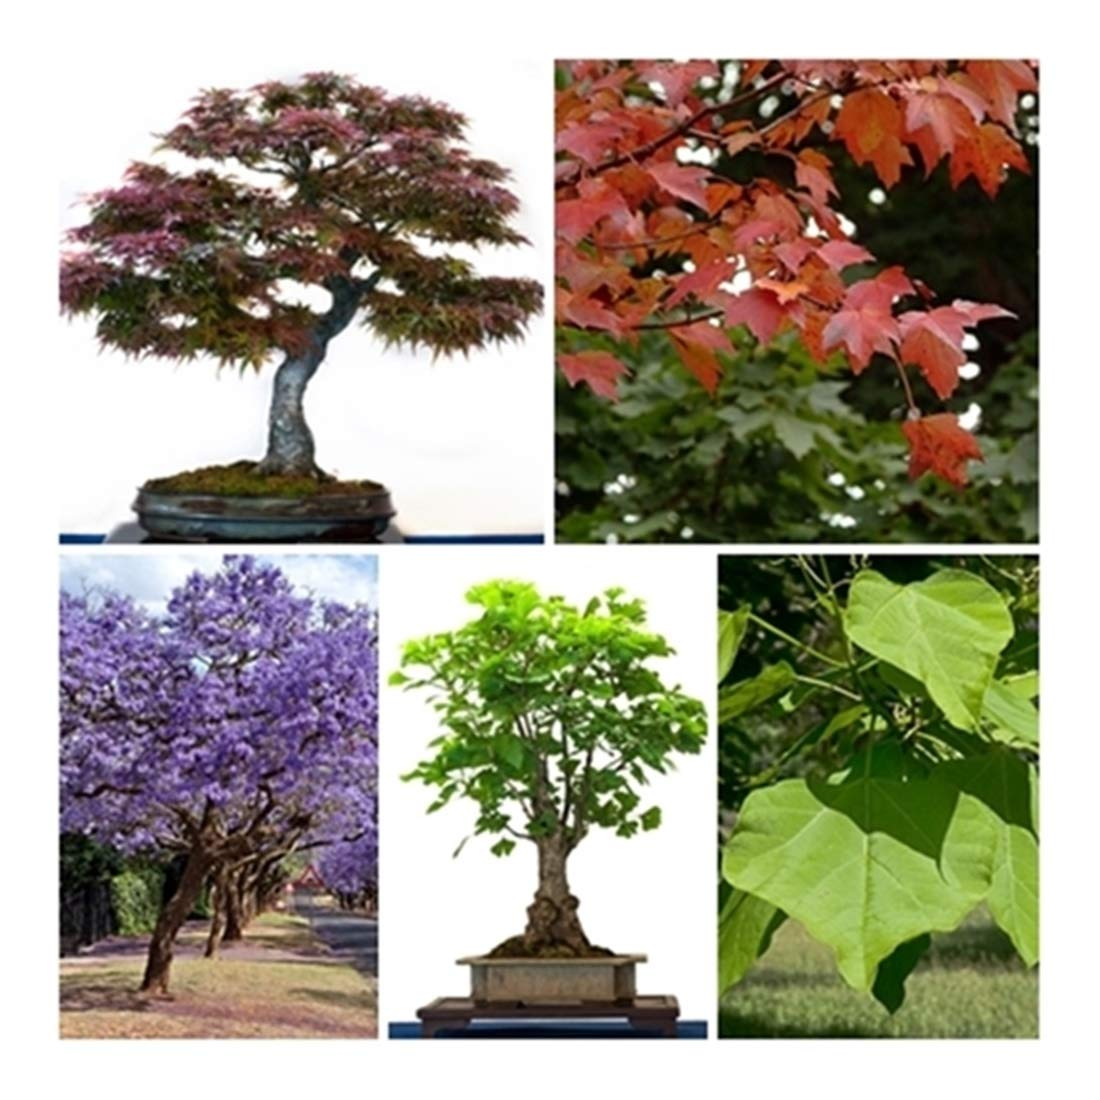 RP Seeds Bonsai Tree Seed Collection No 2-5 Packets. Save 30% on normal prices.